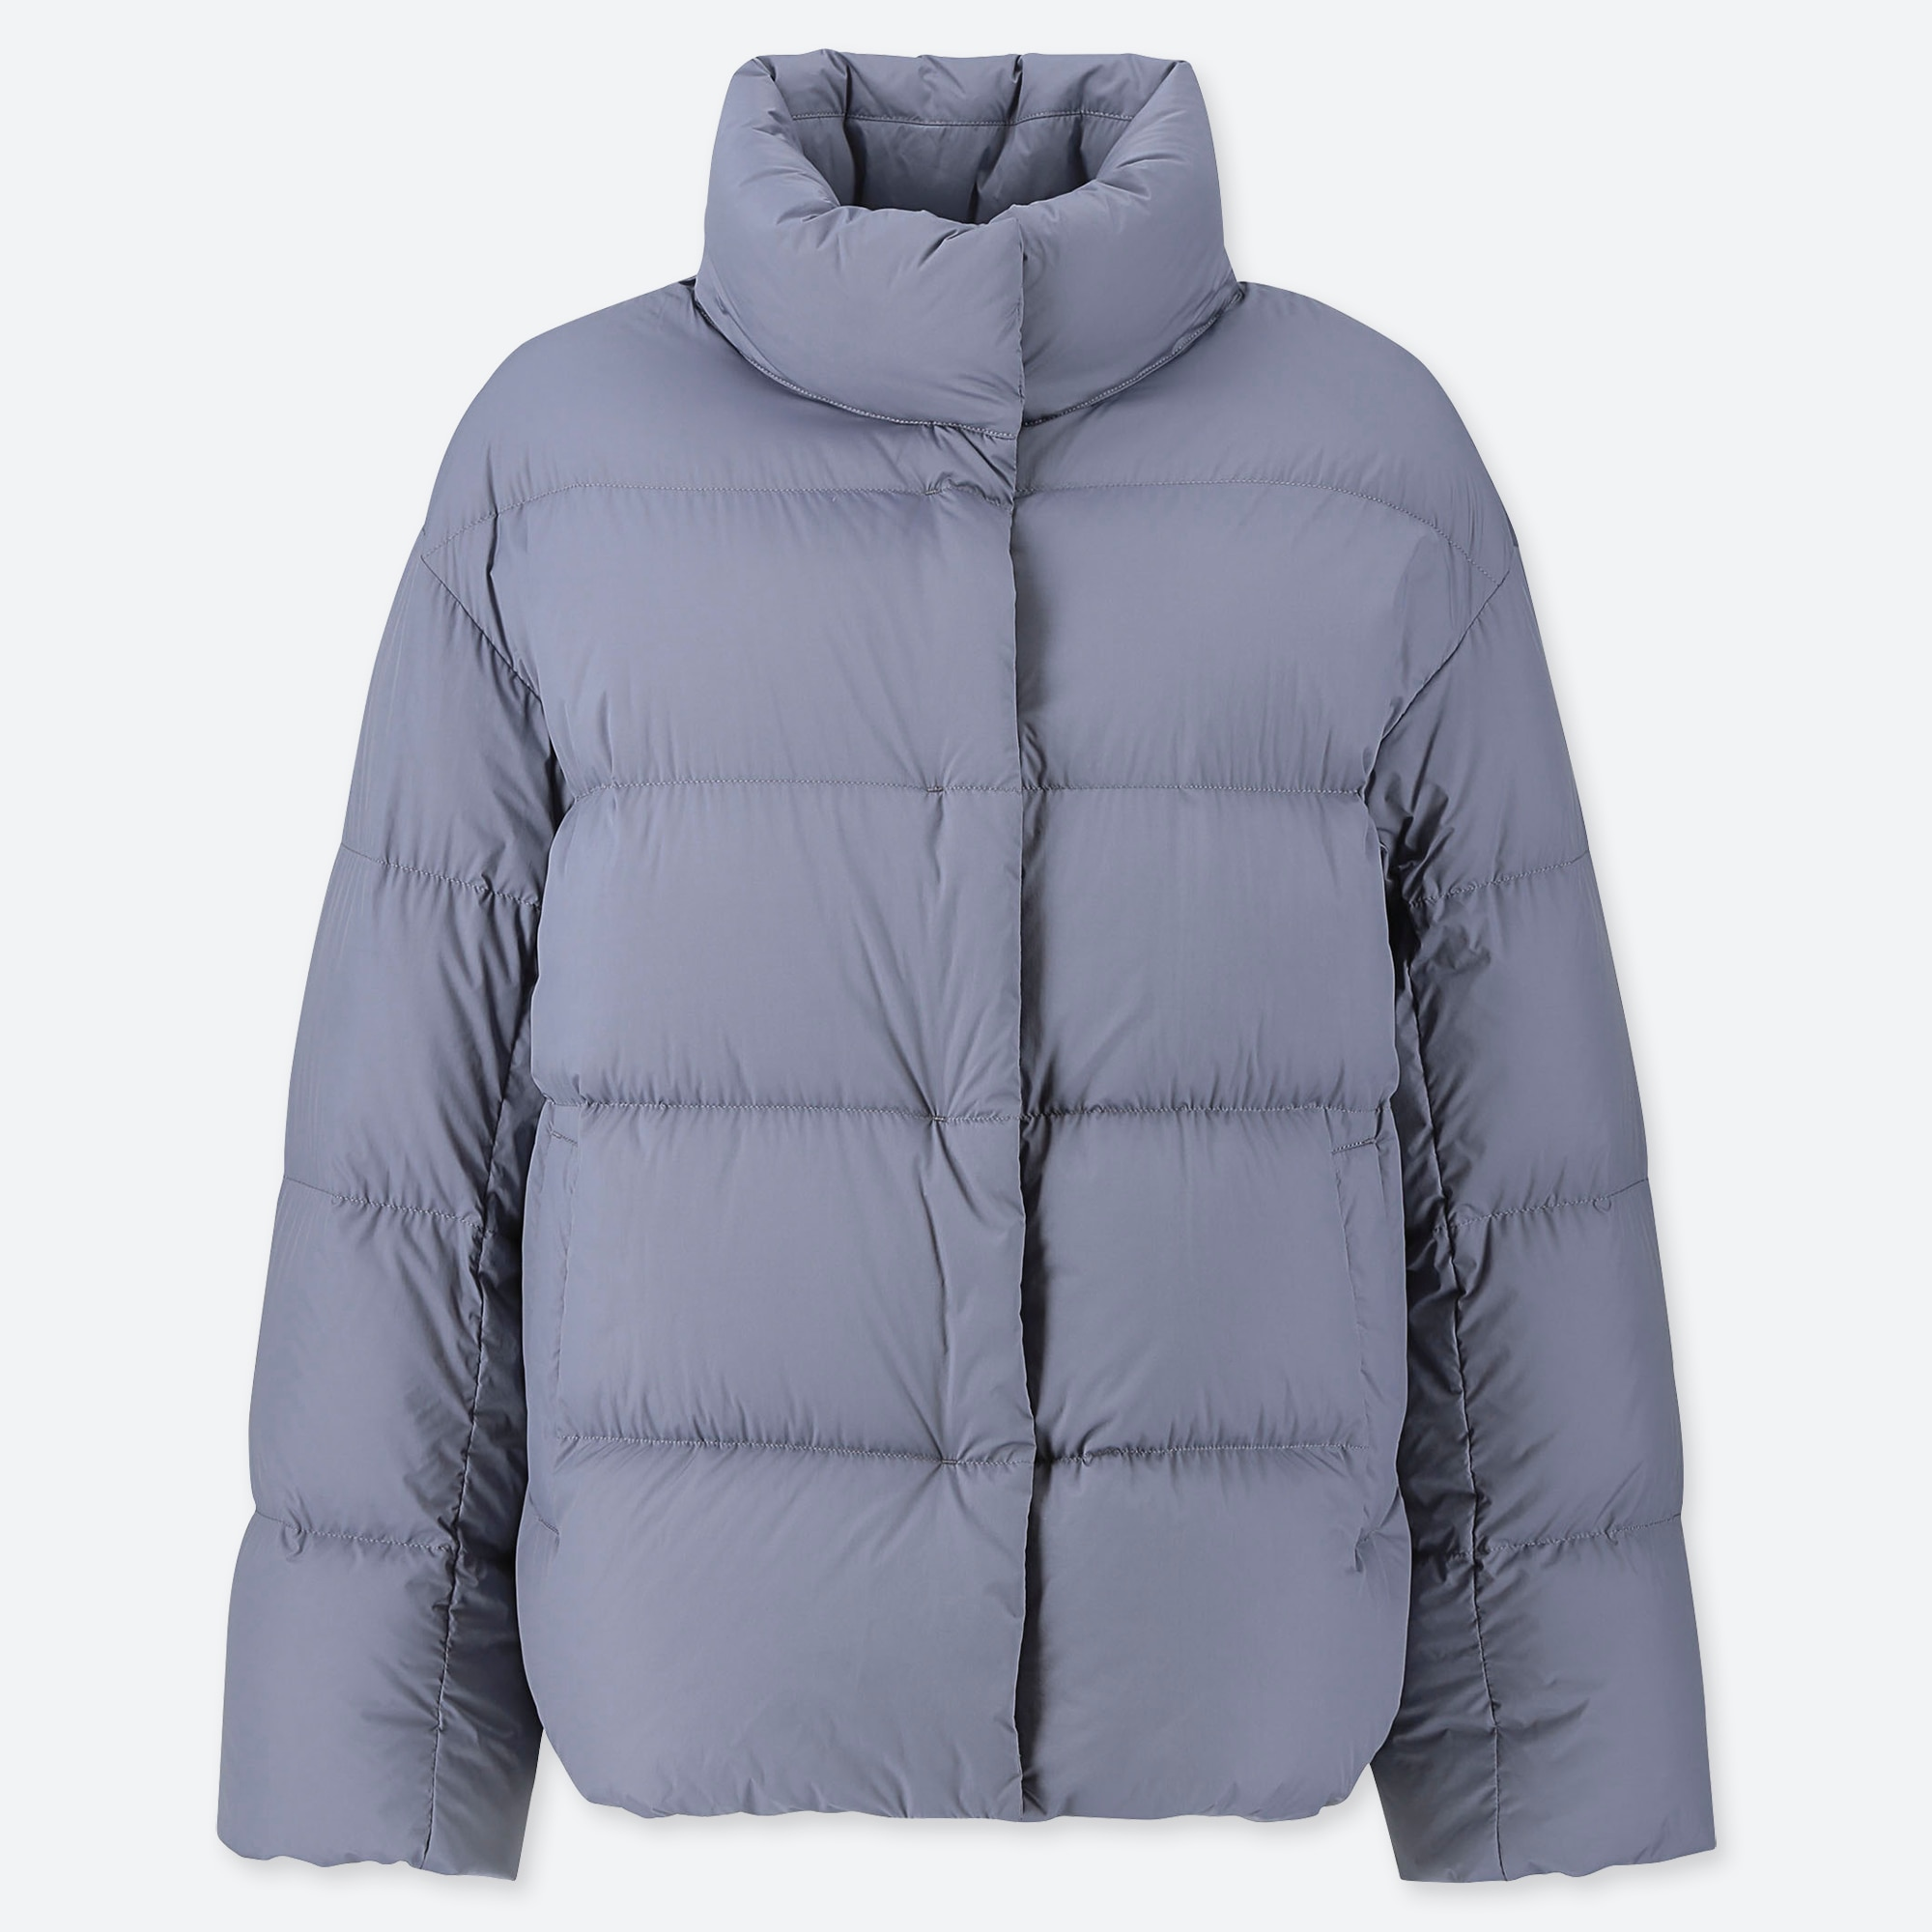 WOMEN ULTRA LIGHT DOWN COCOON SILHOUETTE JACKET